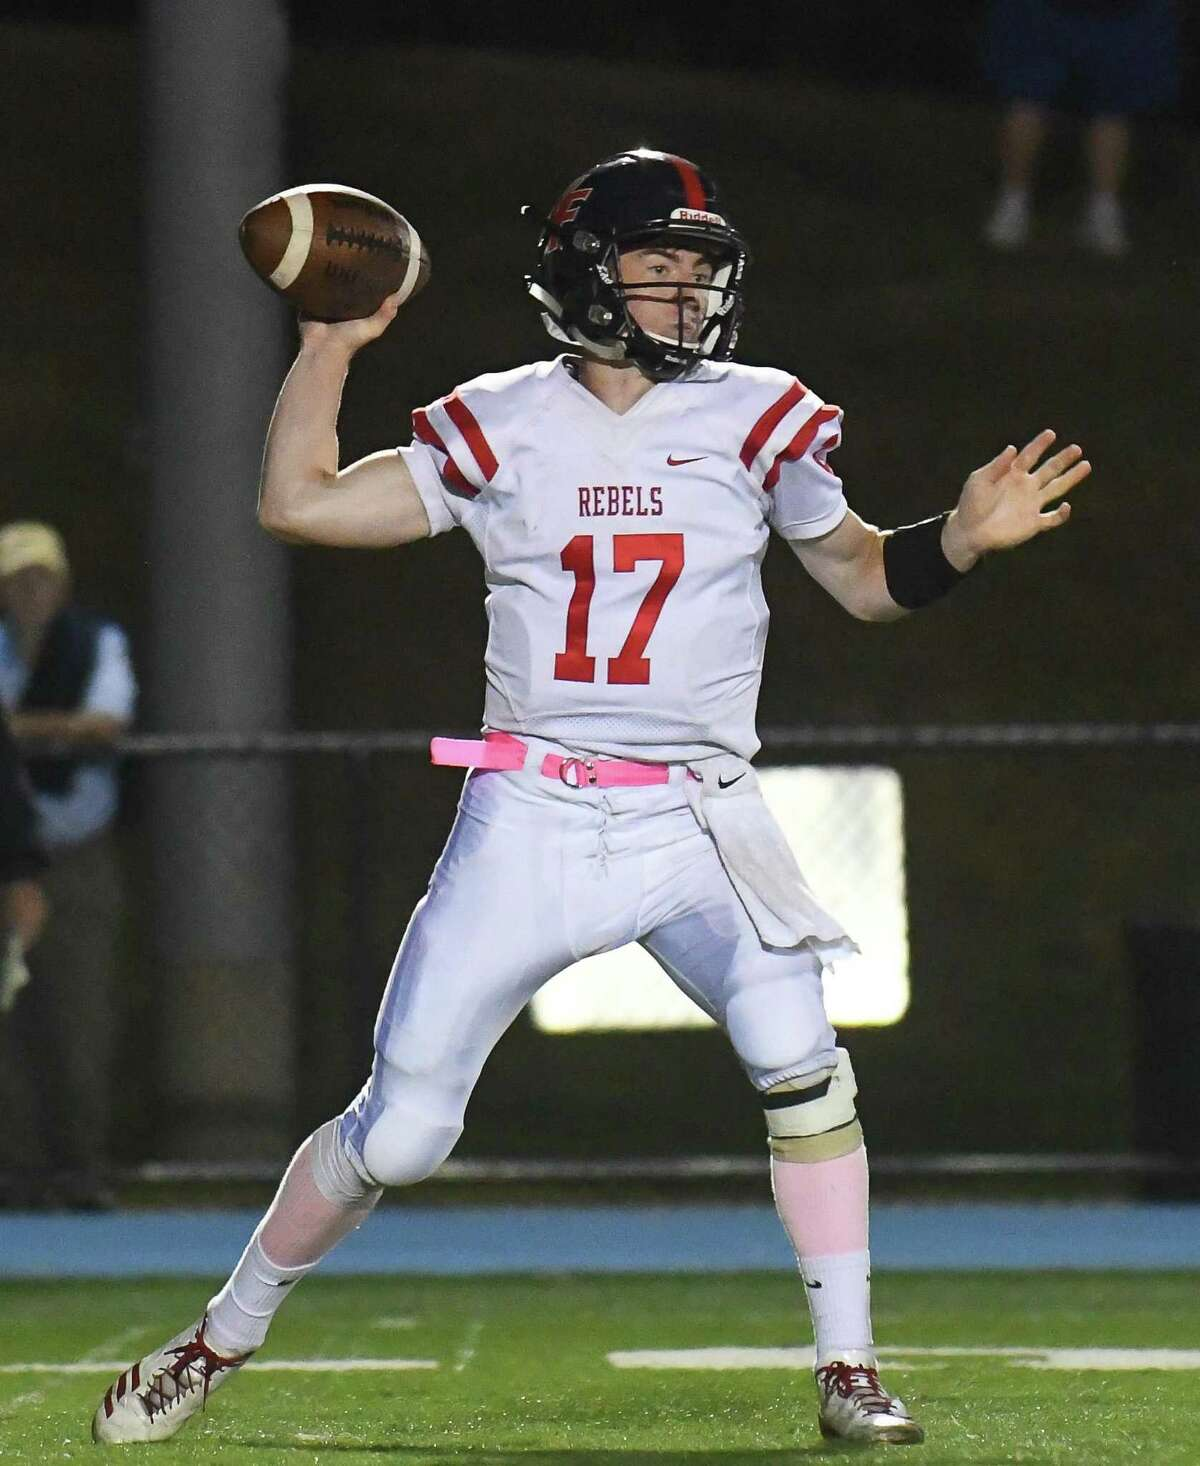 FILE PHOTO: William Enright (17) of the New Fairfield Rebels drops back to pass during a game against the Bunnell Bulldogs at Bunnell High School on Friday October 6, 2017 in Stratford, Connecticut.